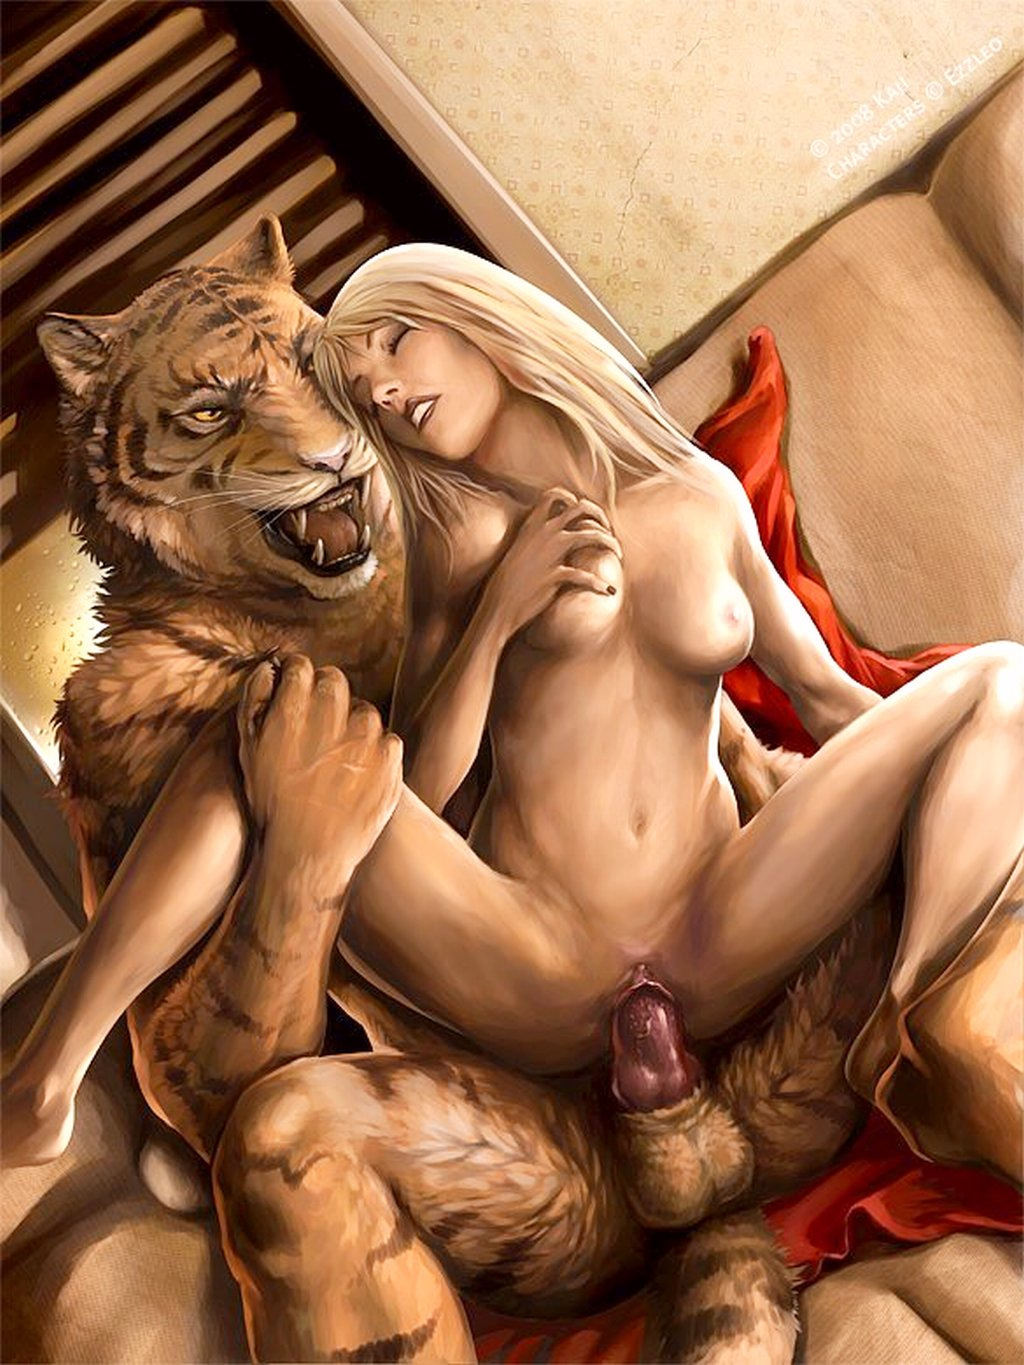 Are right, Tiger girl furry nude accept